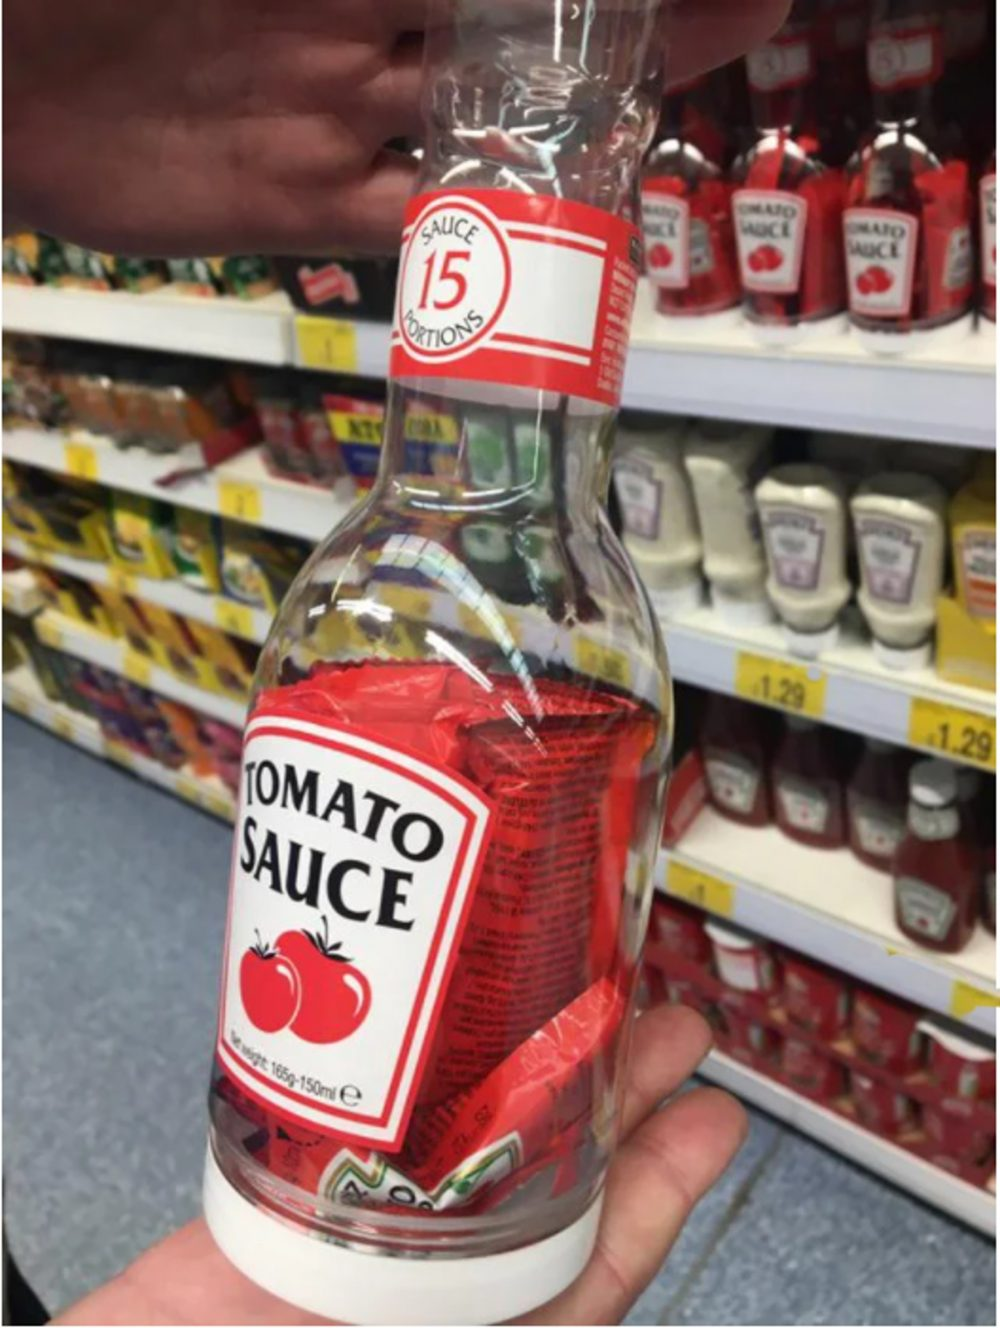 Tomato ketchup bottle that was found in B&M - UK and World News